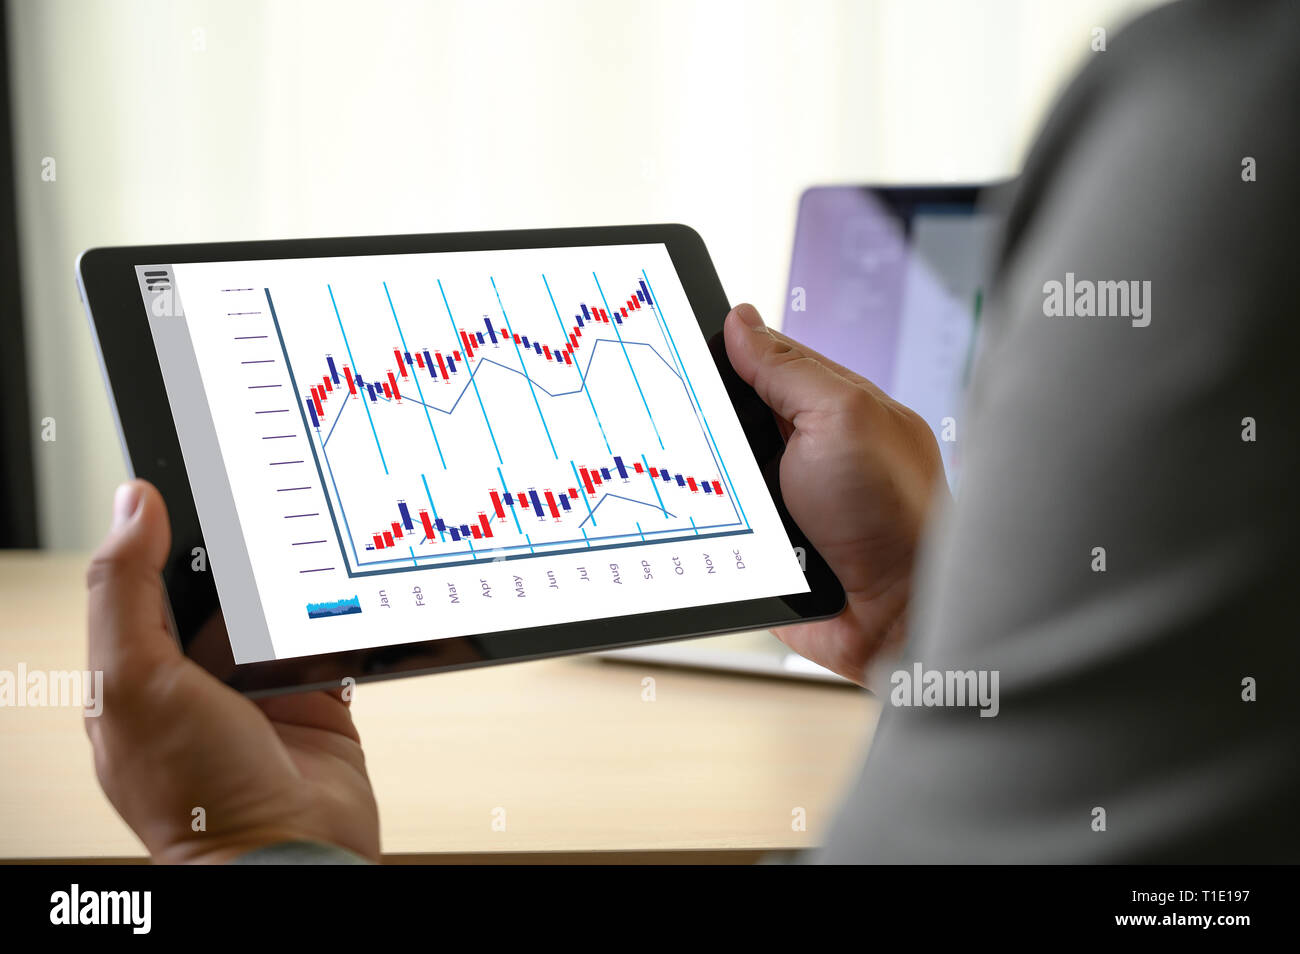 business man work chart schedule or planning financial report data methodology - Stock Image